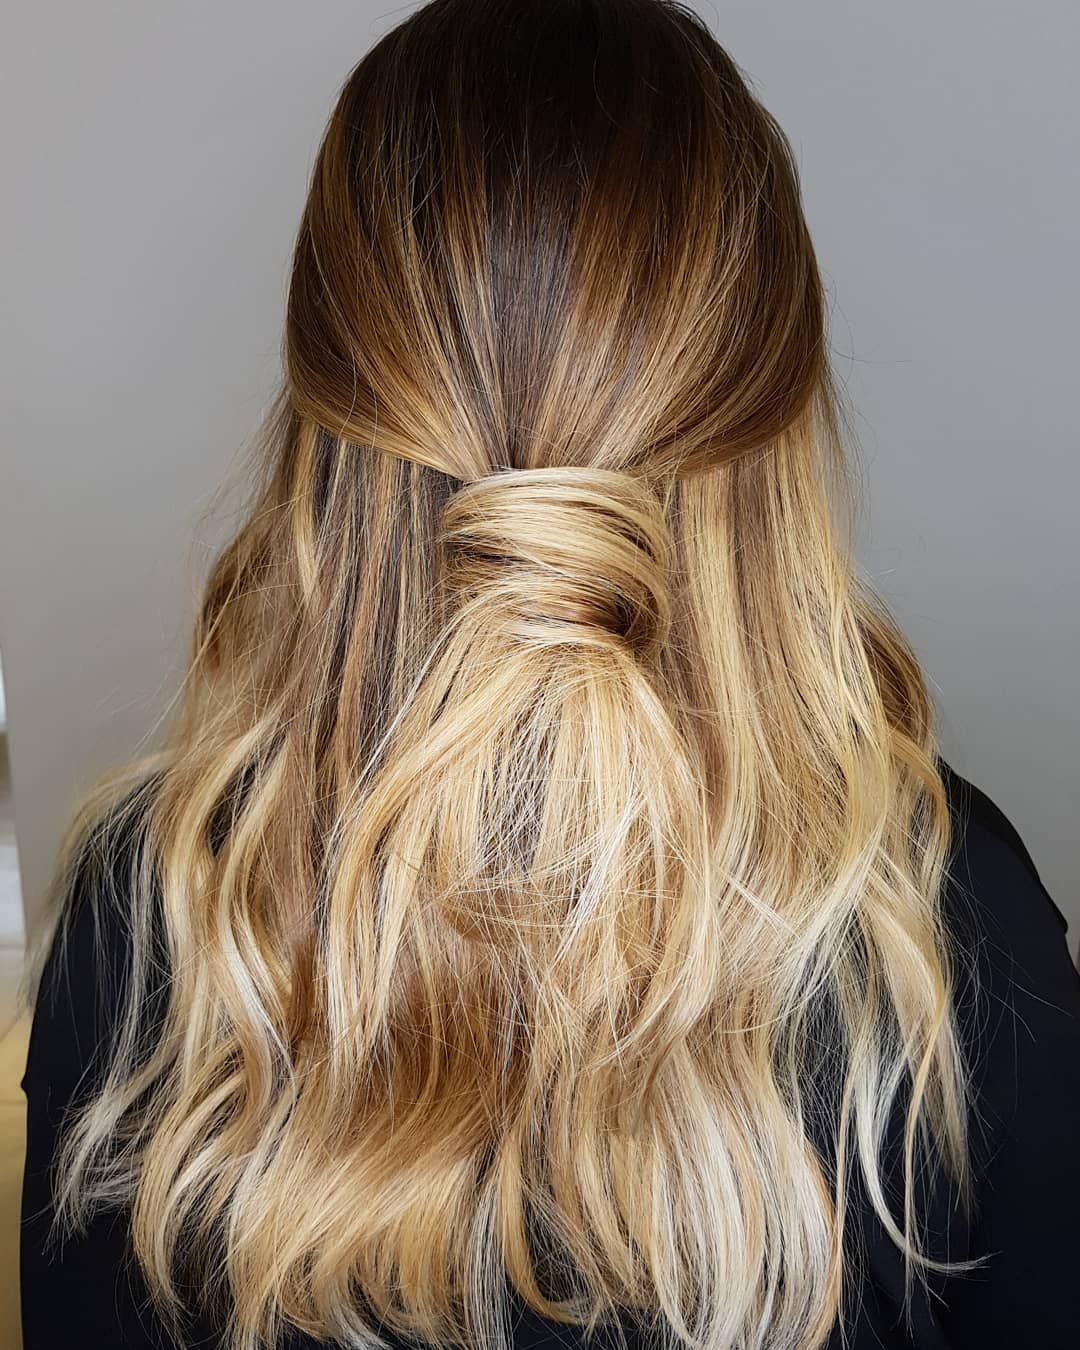 Straight-Hair-with-a-Knot Trendy and Stunning Long Hairstyles 2020